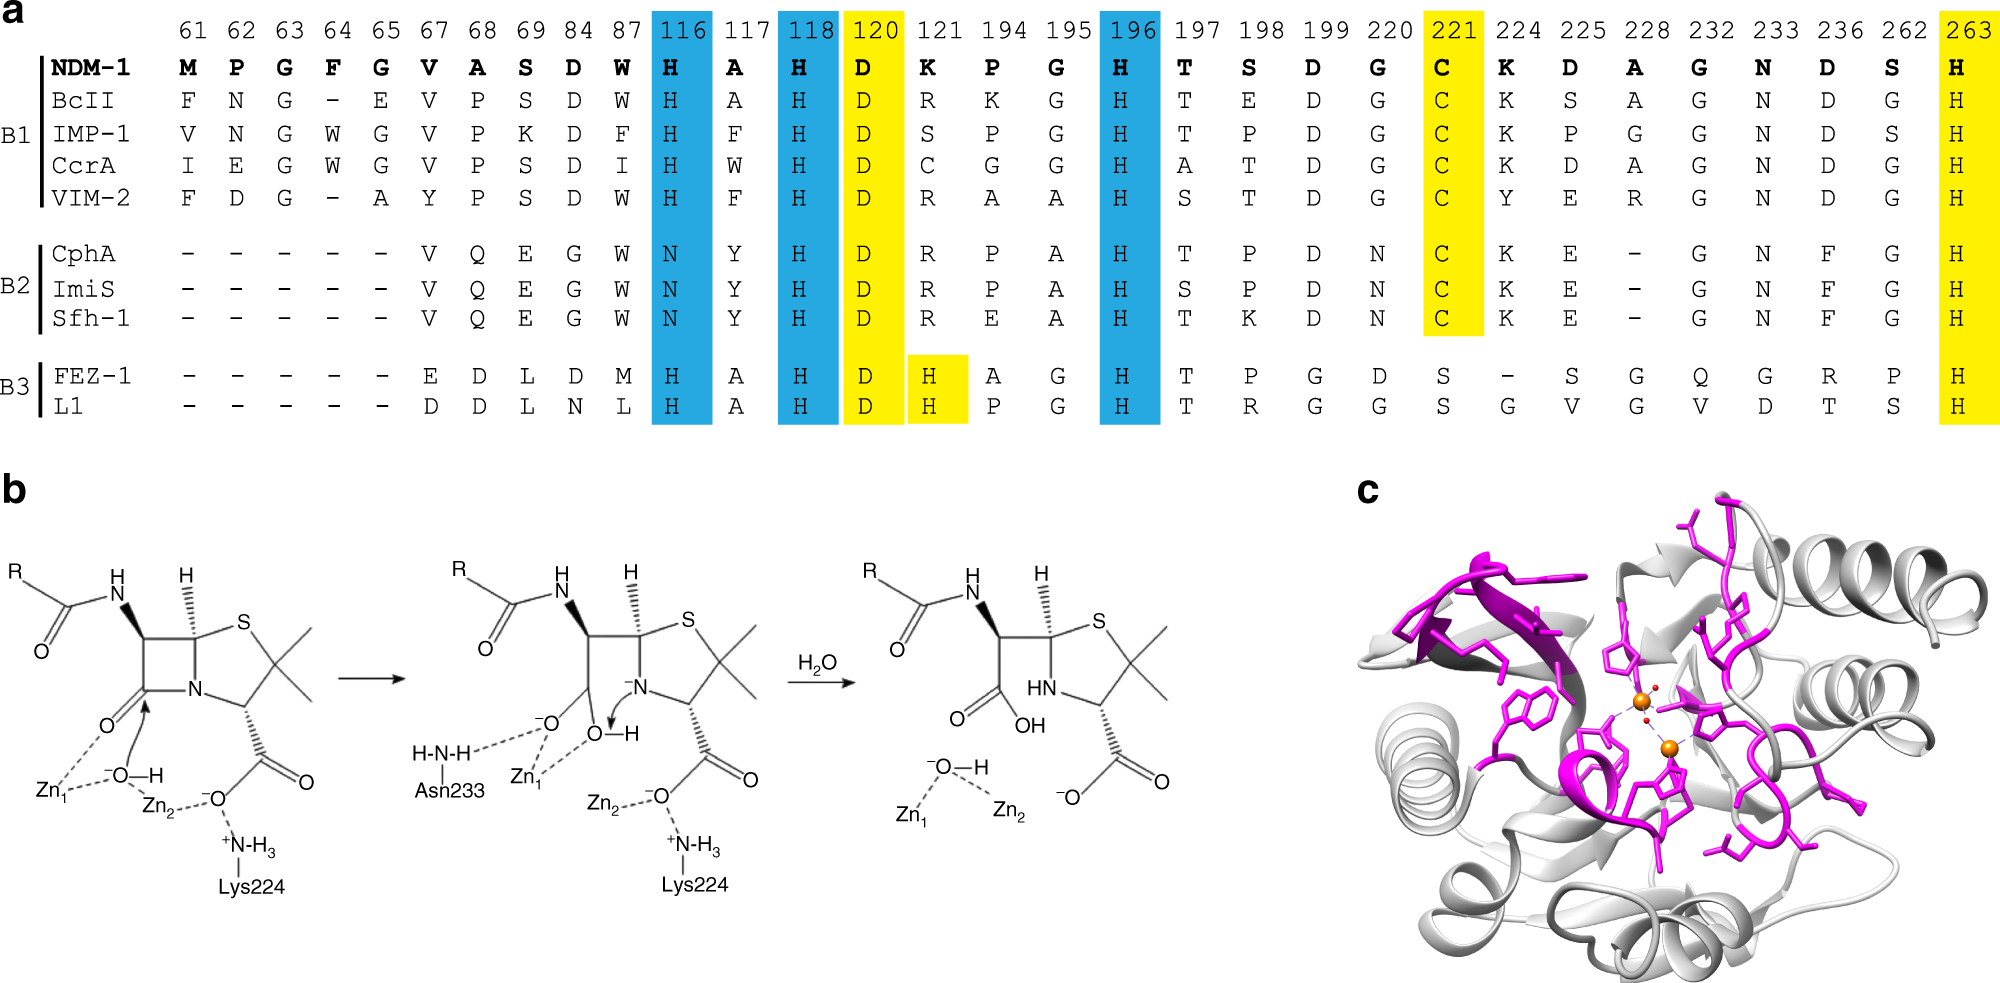 Differential active site requirements for NDM-1 β-lactamase